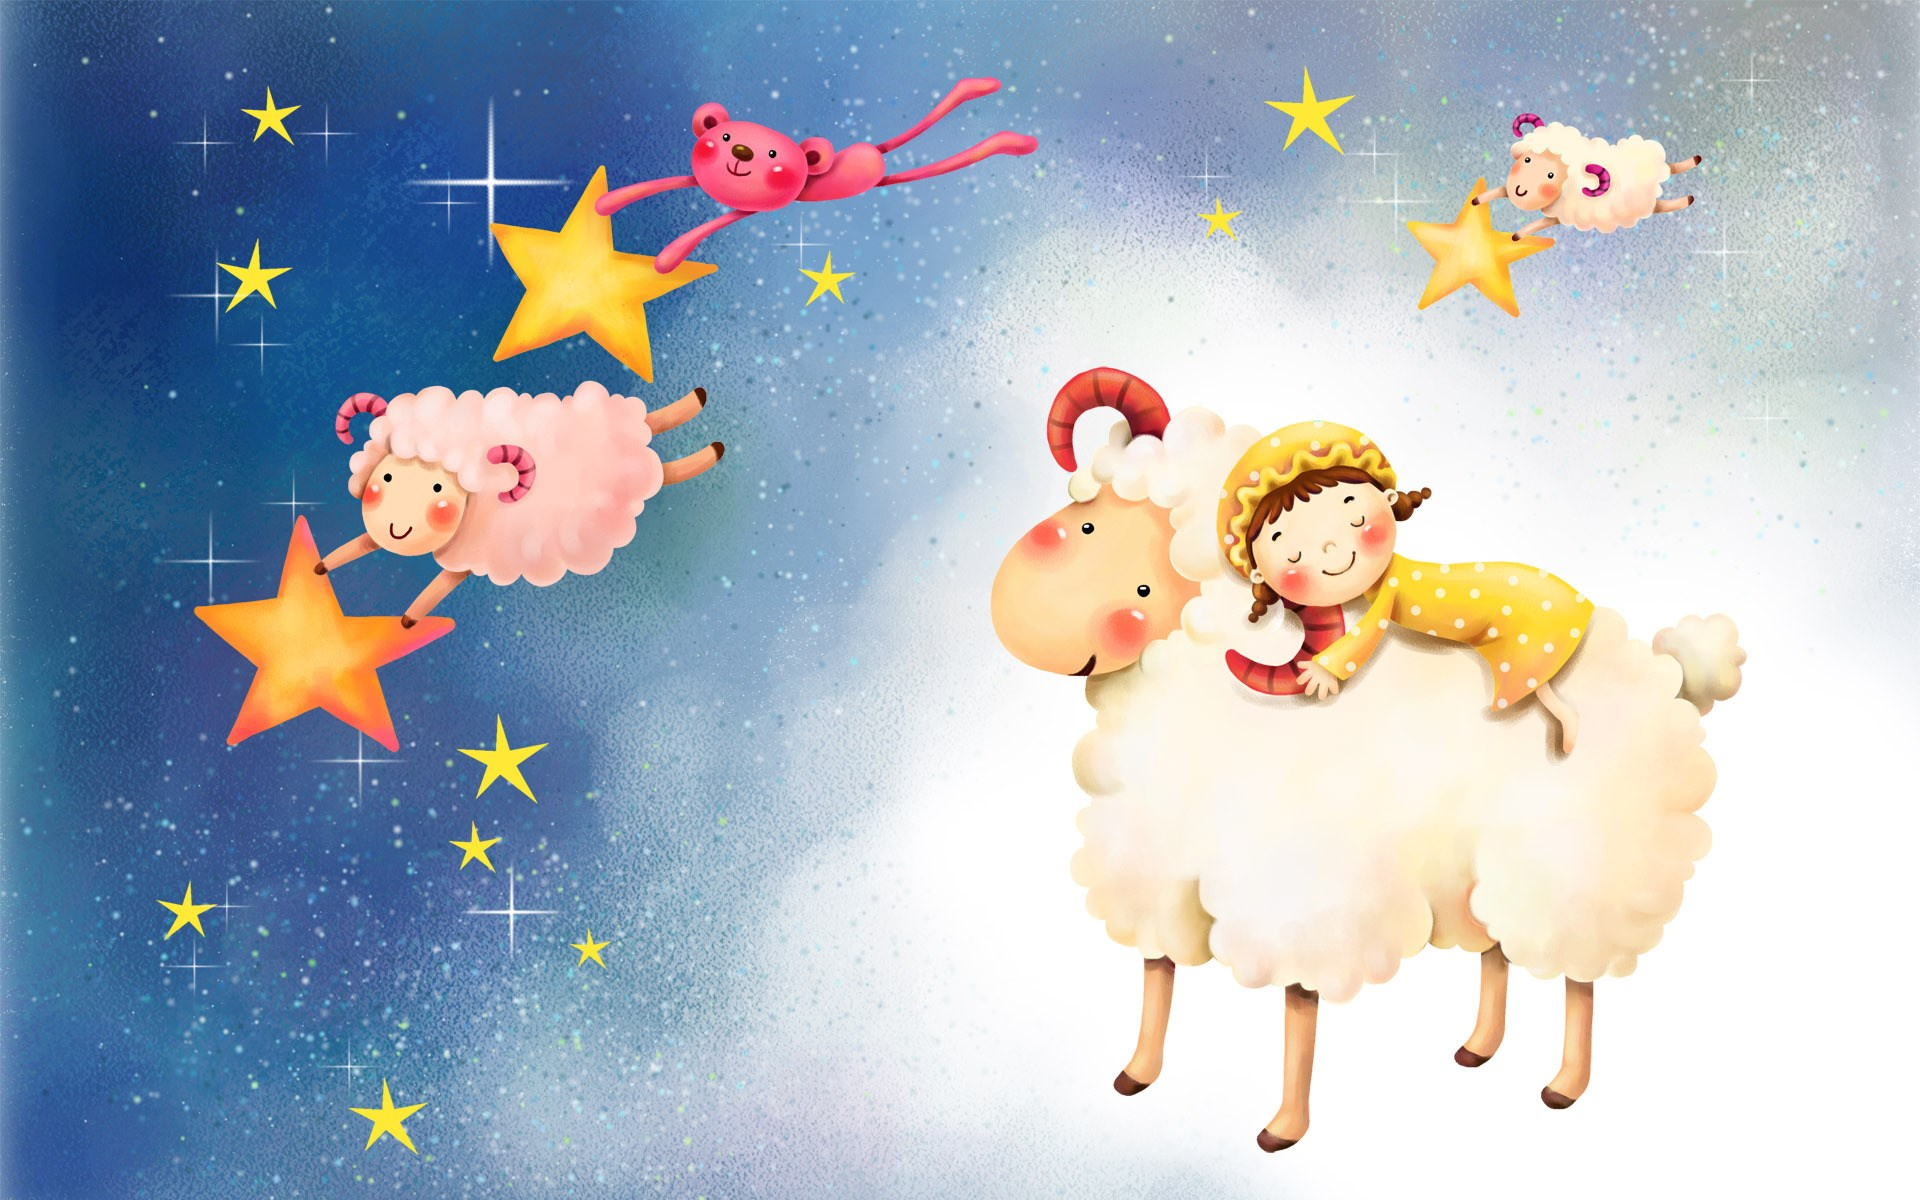 Sheeps Stars Child Sleep Night Art